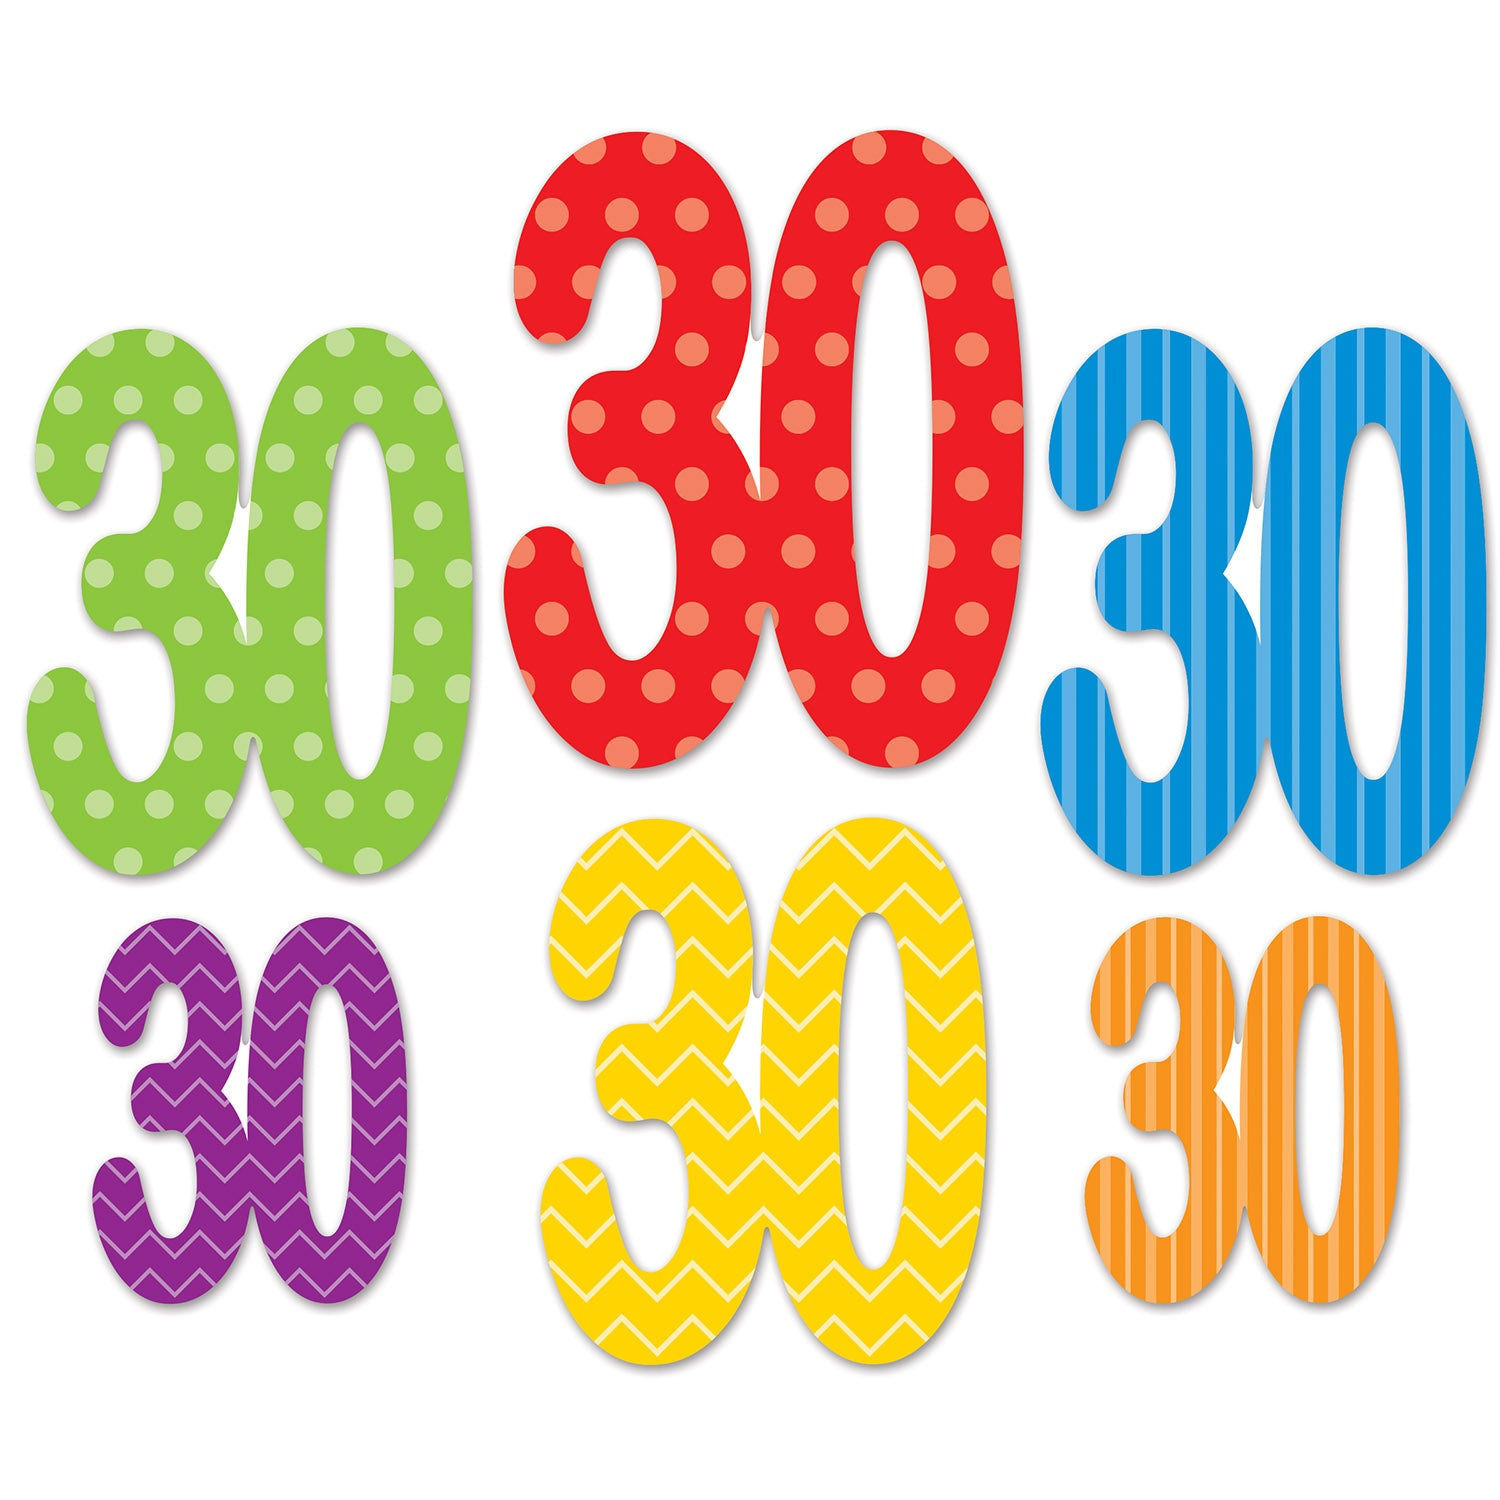 30 Cutouts (6/Pkg) by Beistle - 30th Birthday Party Decorations